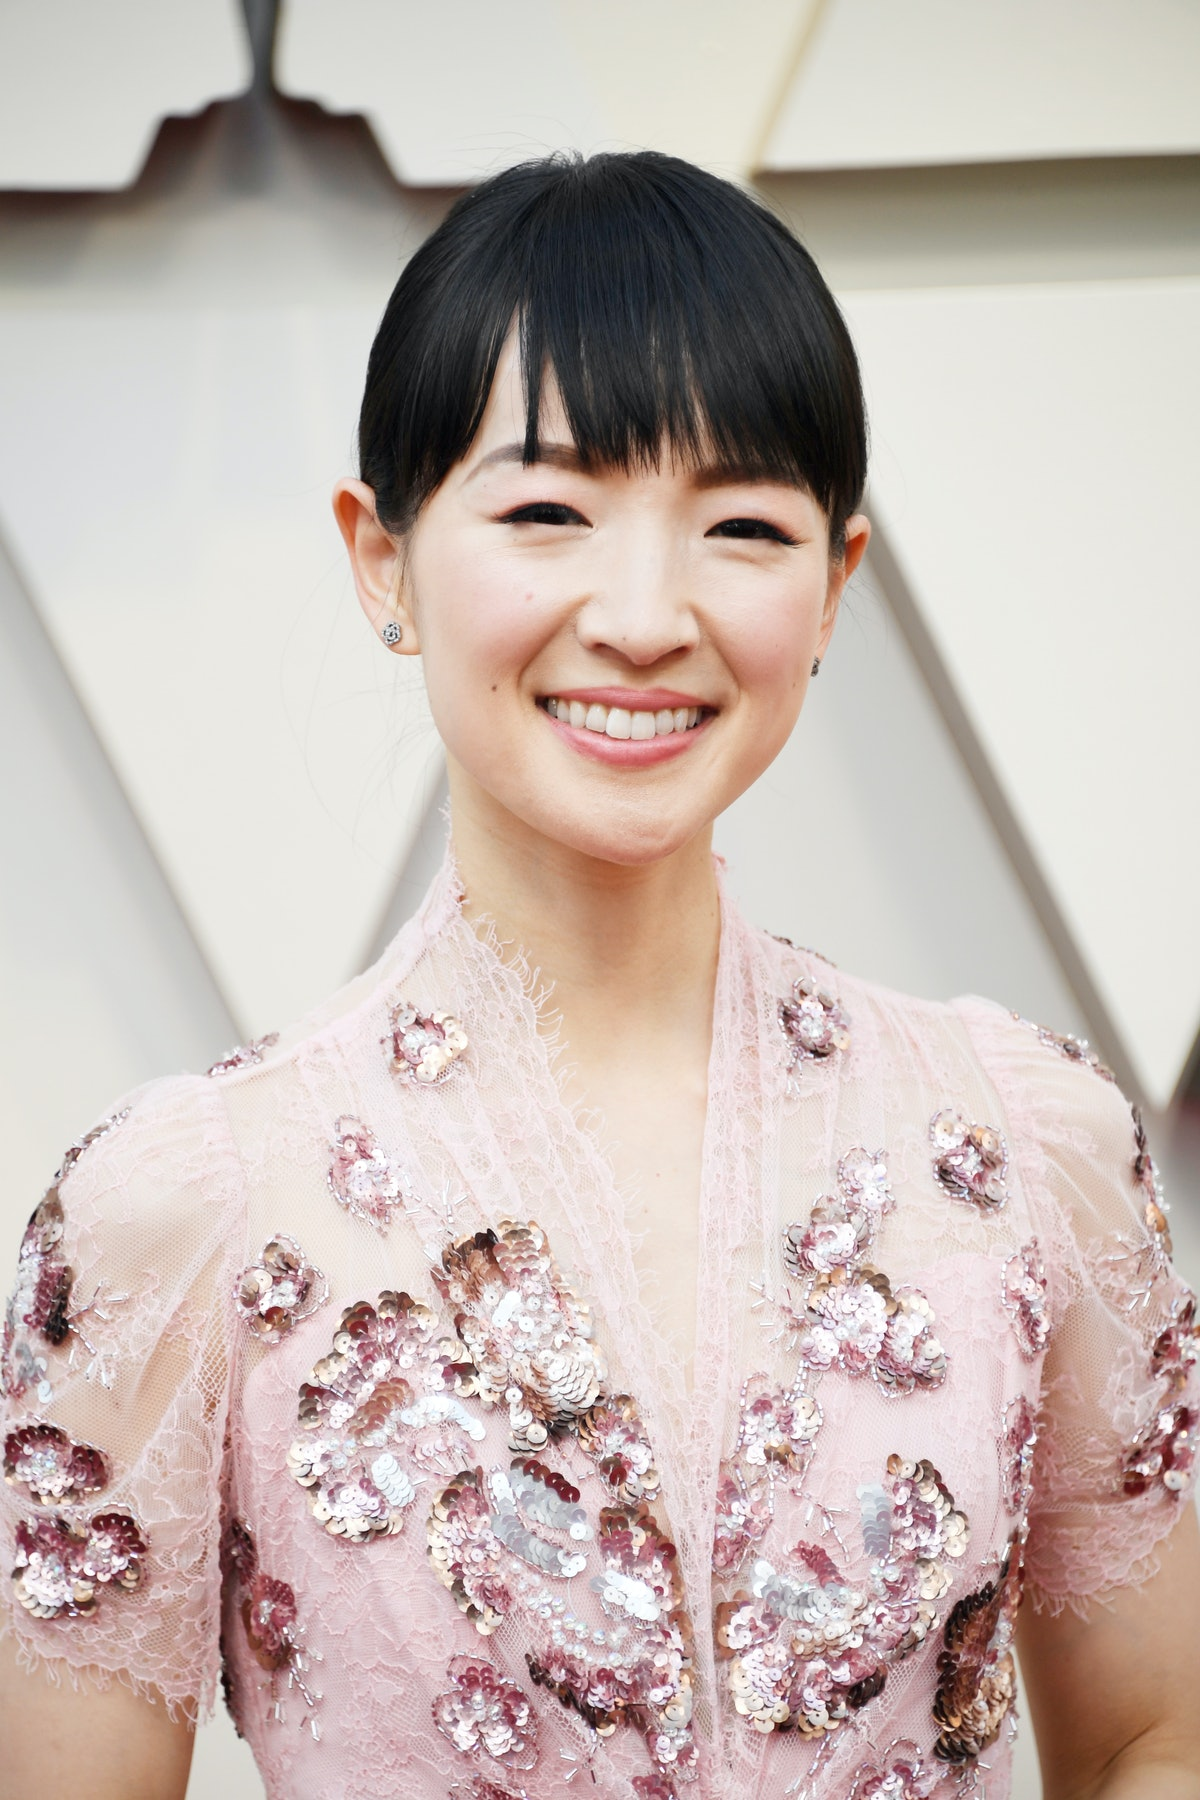 Marie Kondo's New Children's Book 'Kiki & Jax' Is Like Her Original Hit, But WAY Cuter